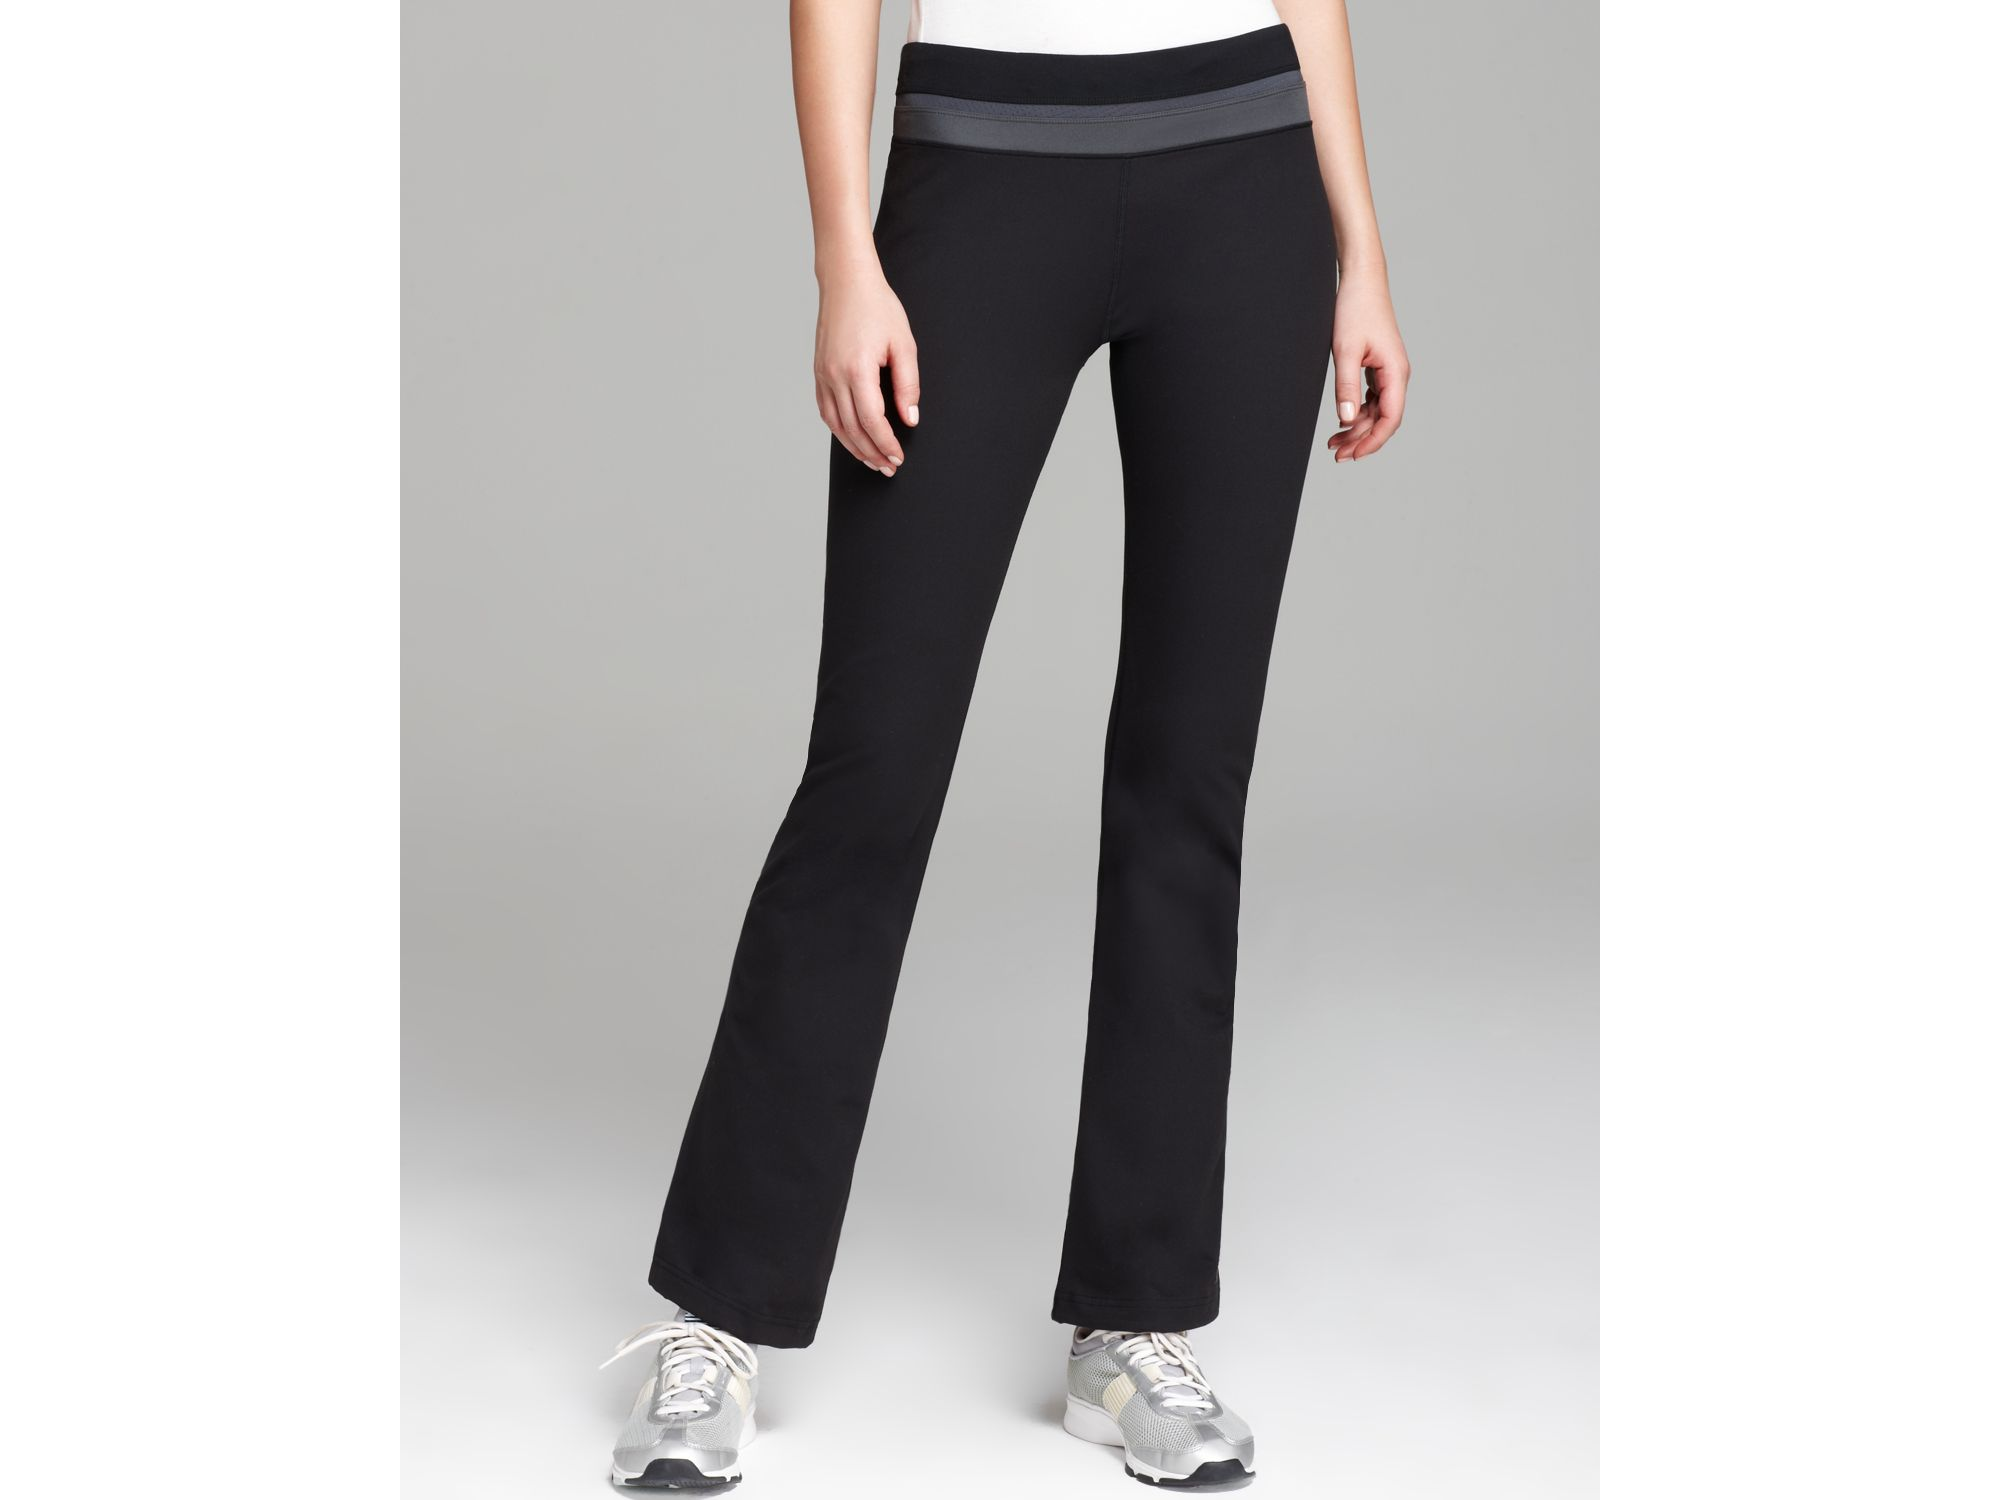 urban pinterest comforter pin gym exercise go tight comfort pants moving